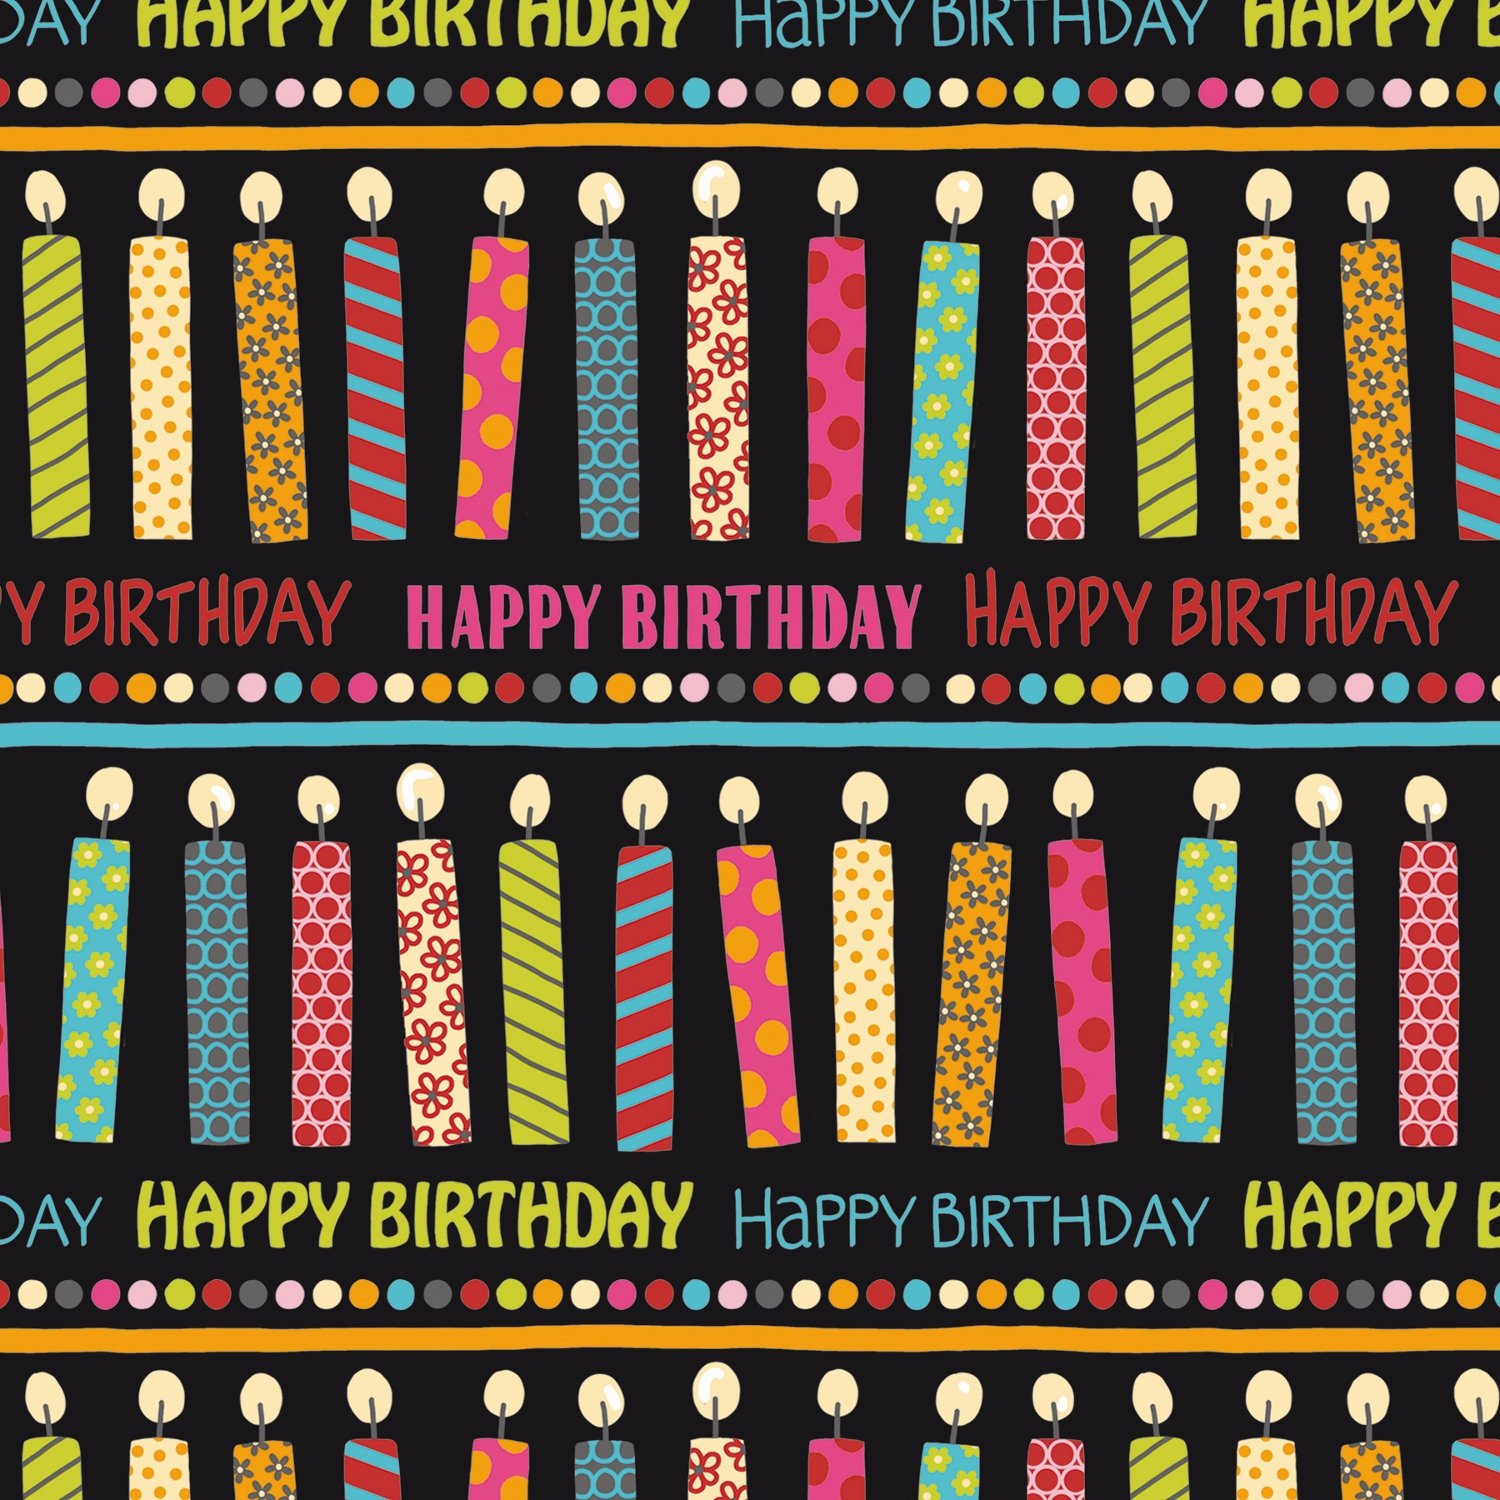 3-Count Premium Wrapping Paper Rolls, Say It's Your Birthday by The Gift Wrap Company